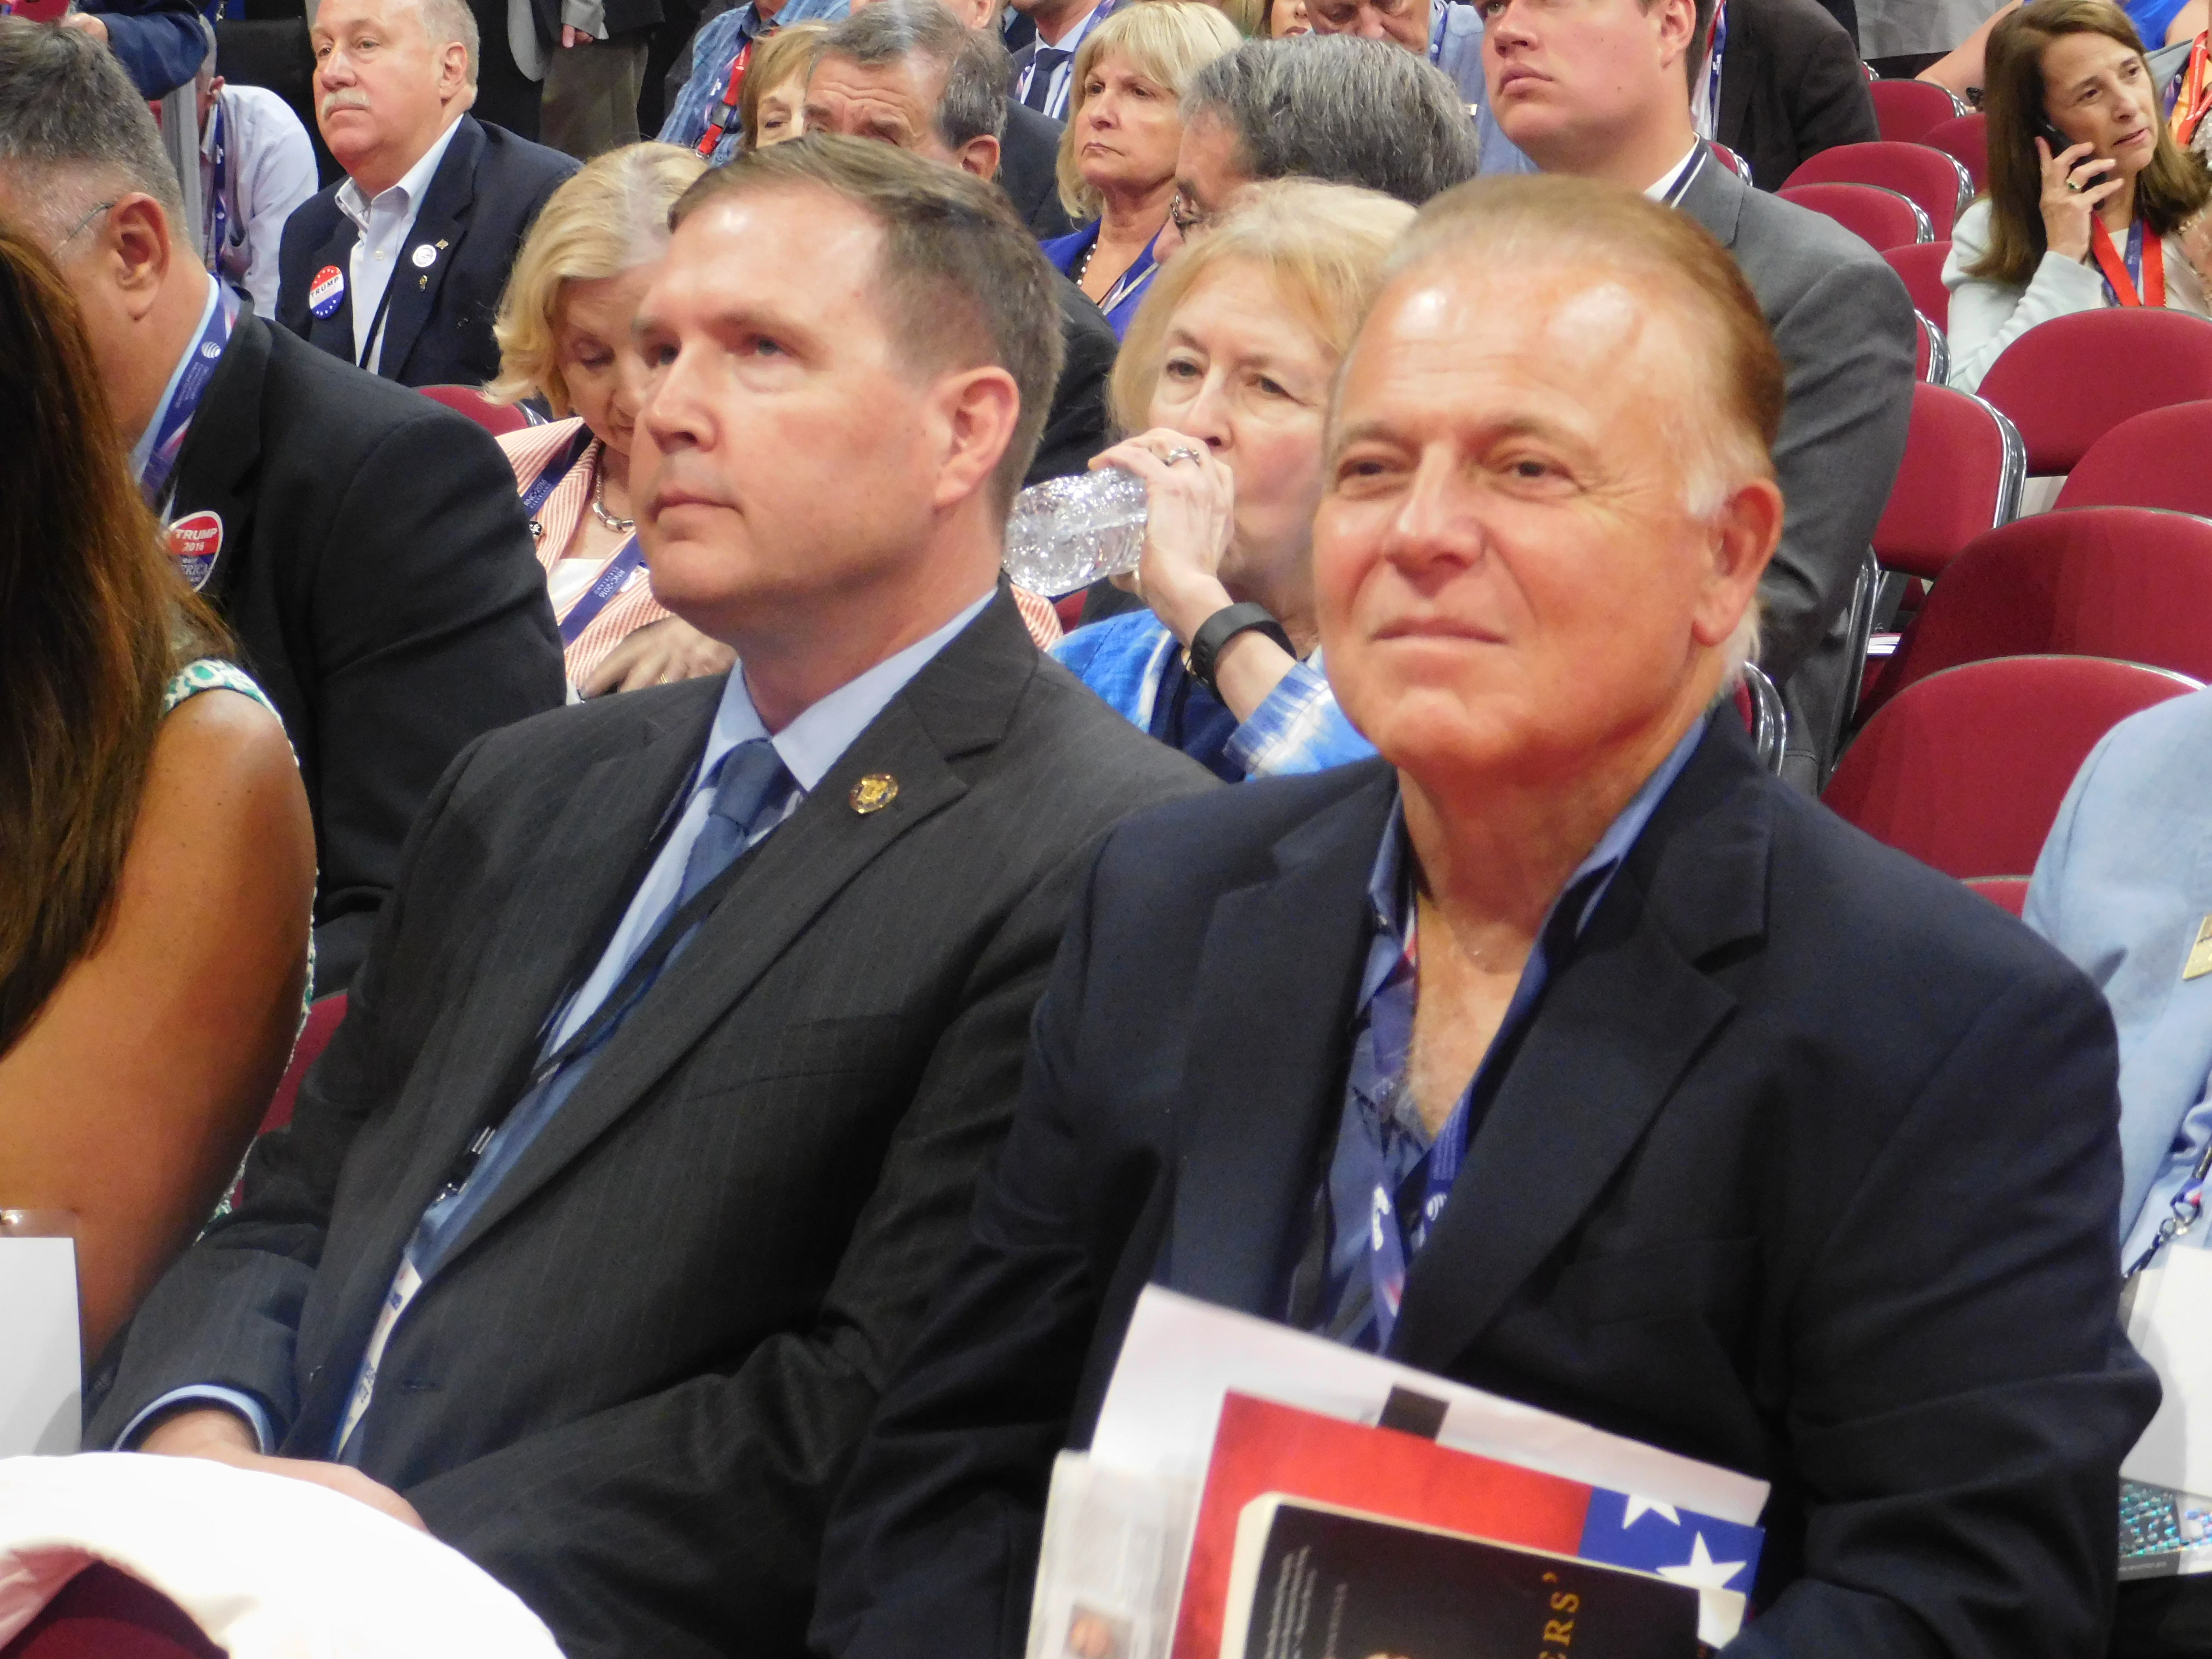 Doherty and state Senator Joe Pennacchio at the RNC in Cleveland.